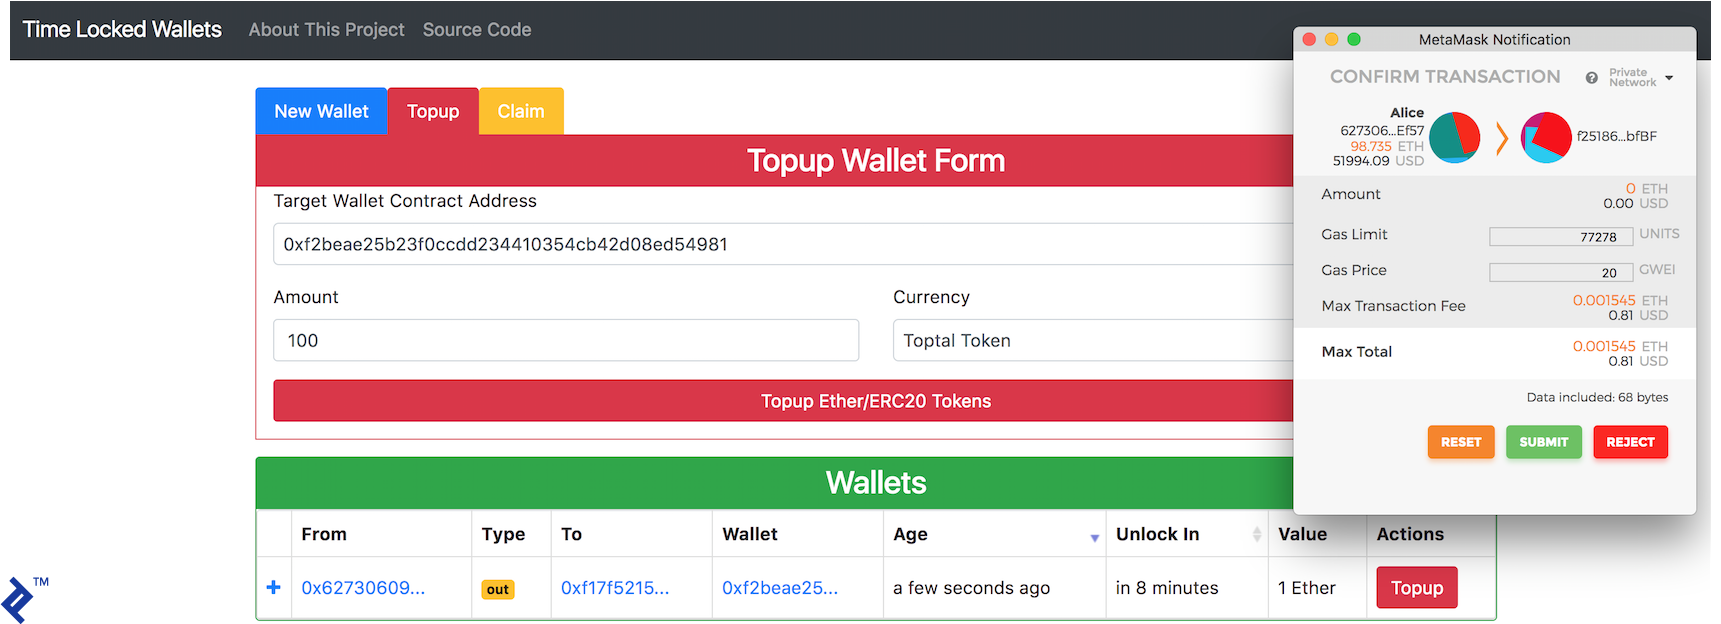 Alice using the Time-Locked Wallets ĐApp to send Bob 100 Toptal Tokens.